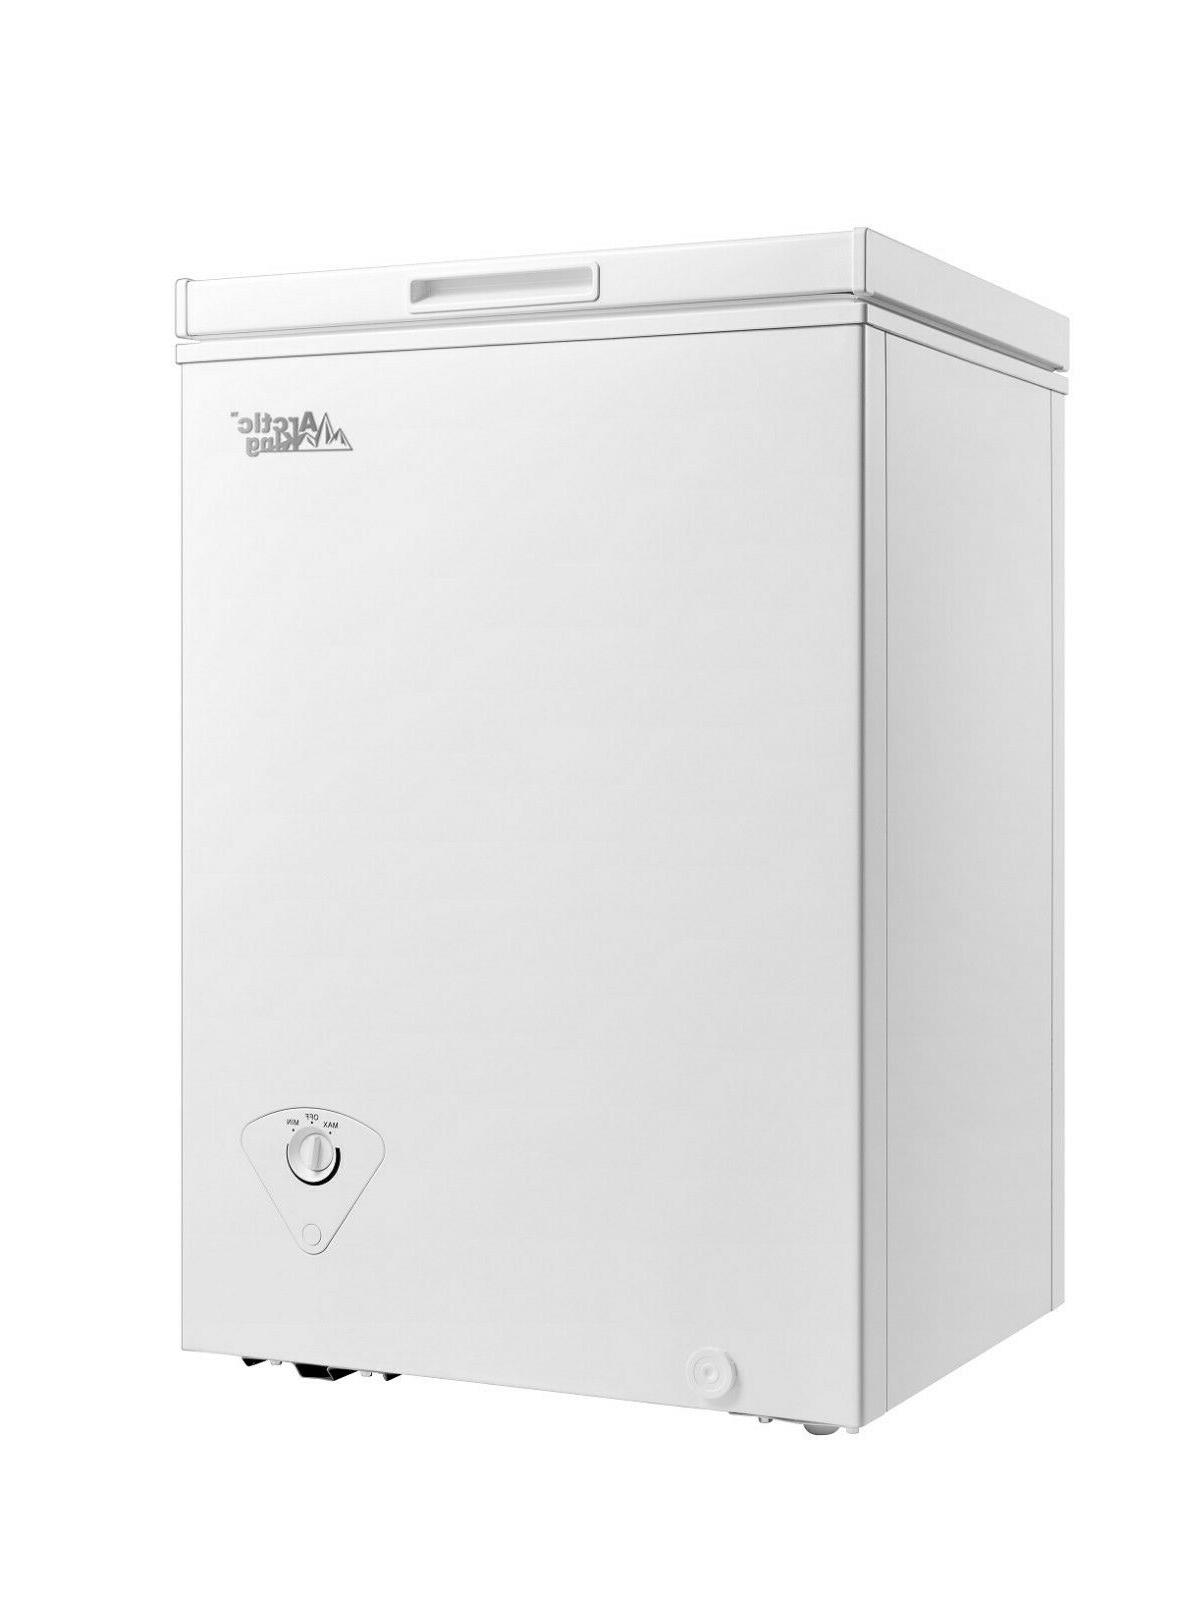 Arctic King 3.5 cu ft Chest Freezer White Adjustable Thermos